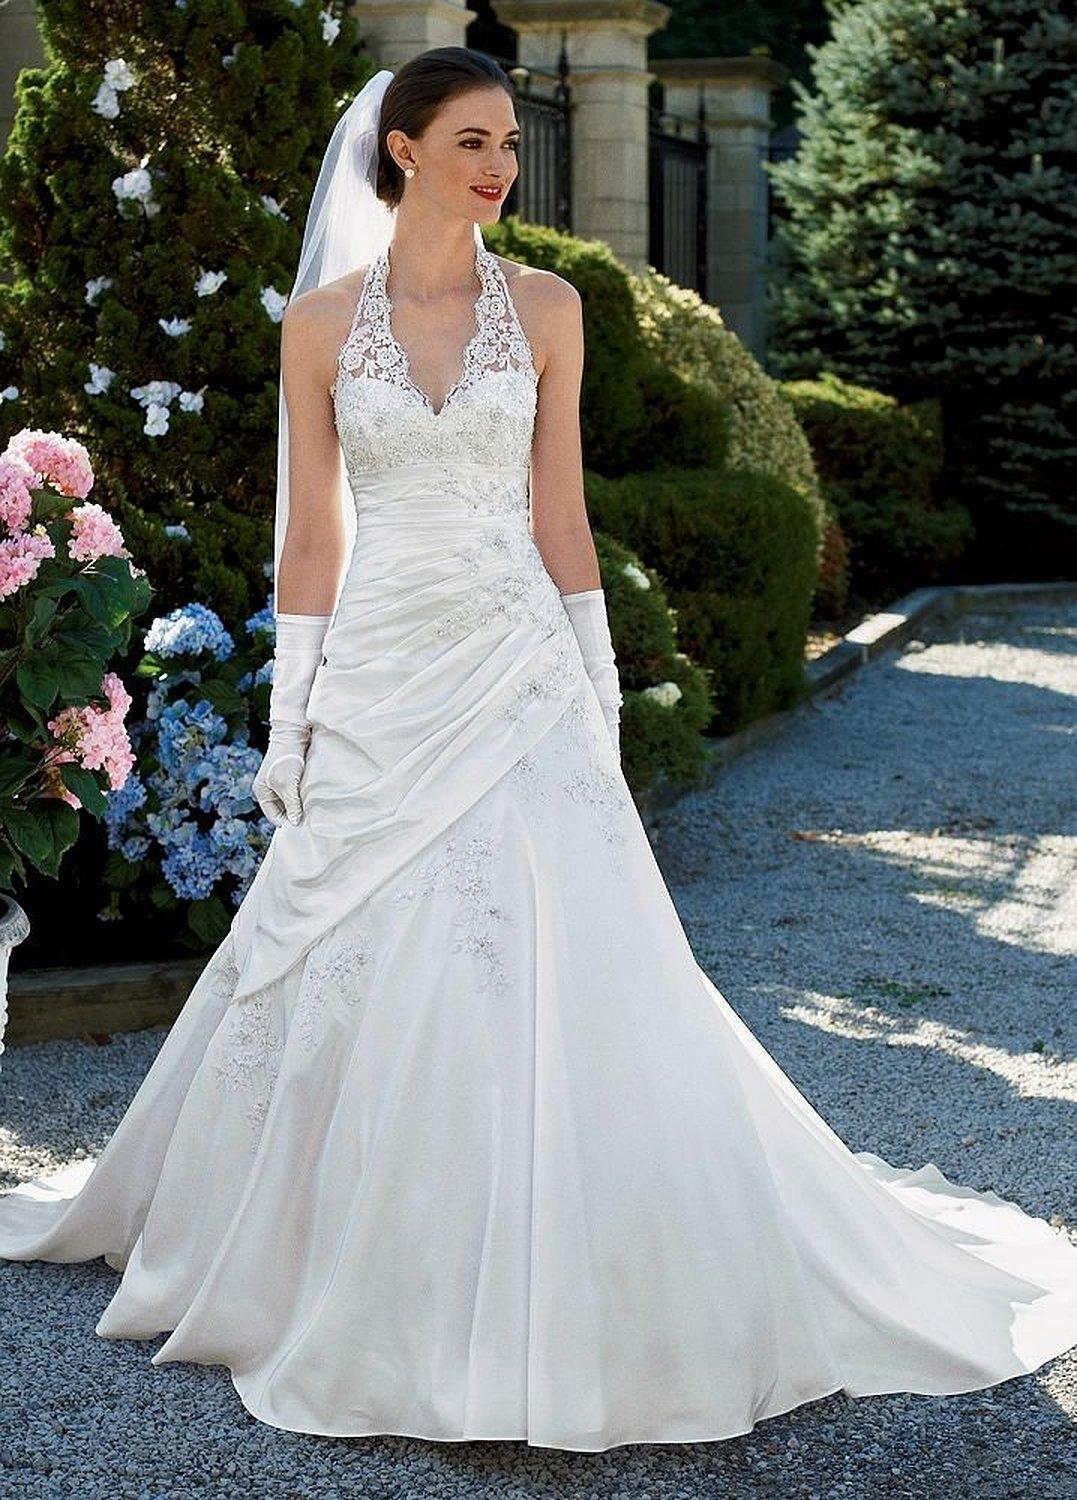 AsEstilo Store: DIFFERENT BRIDAL DRESS STYLES